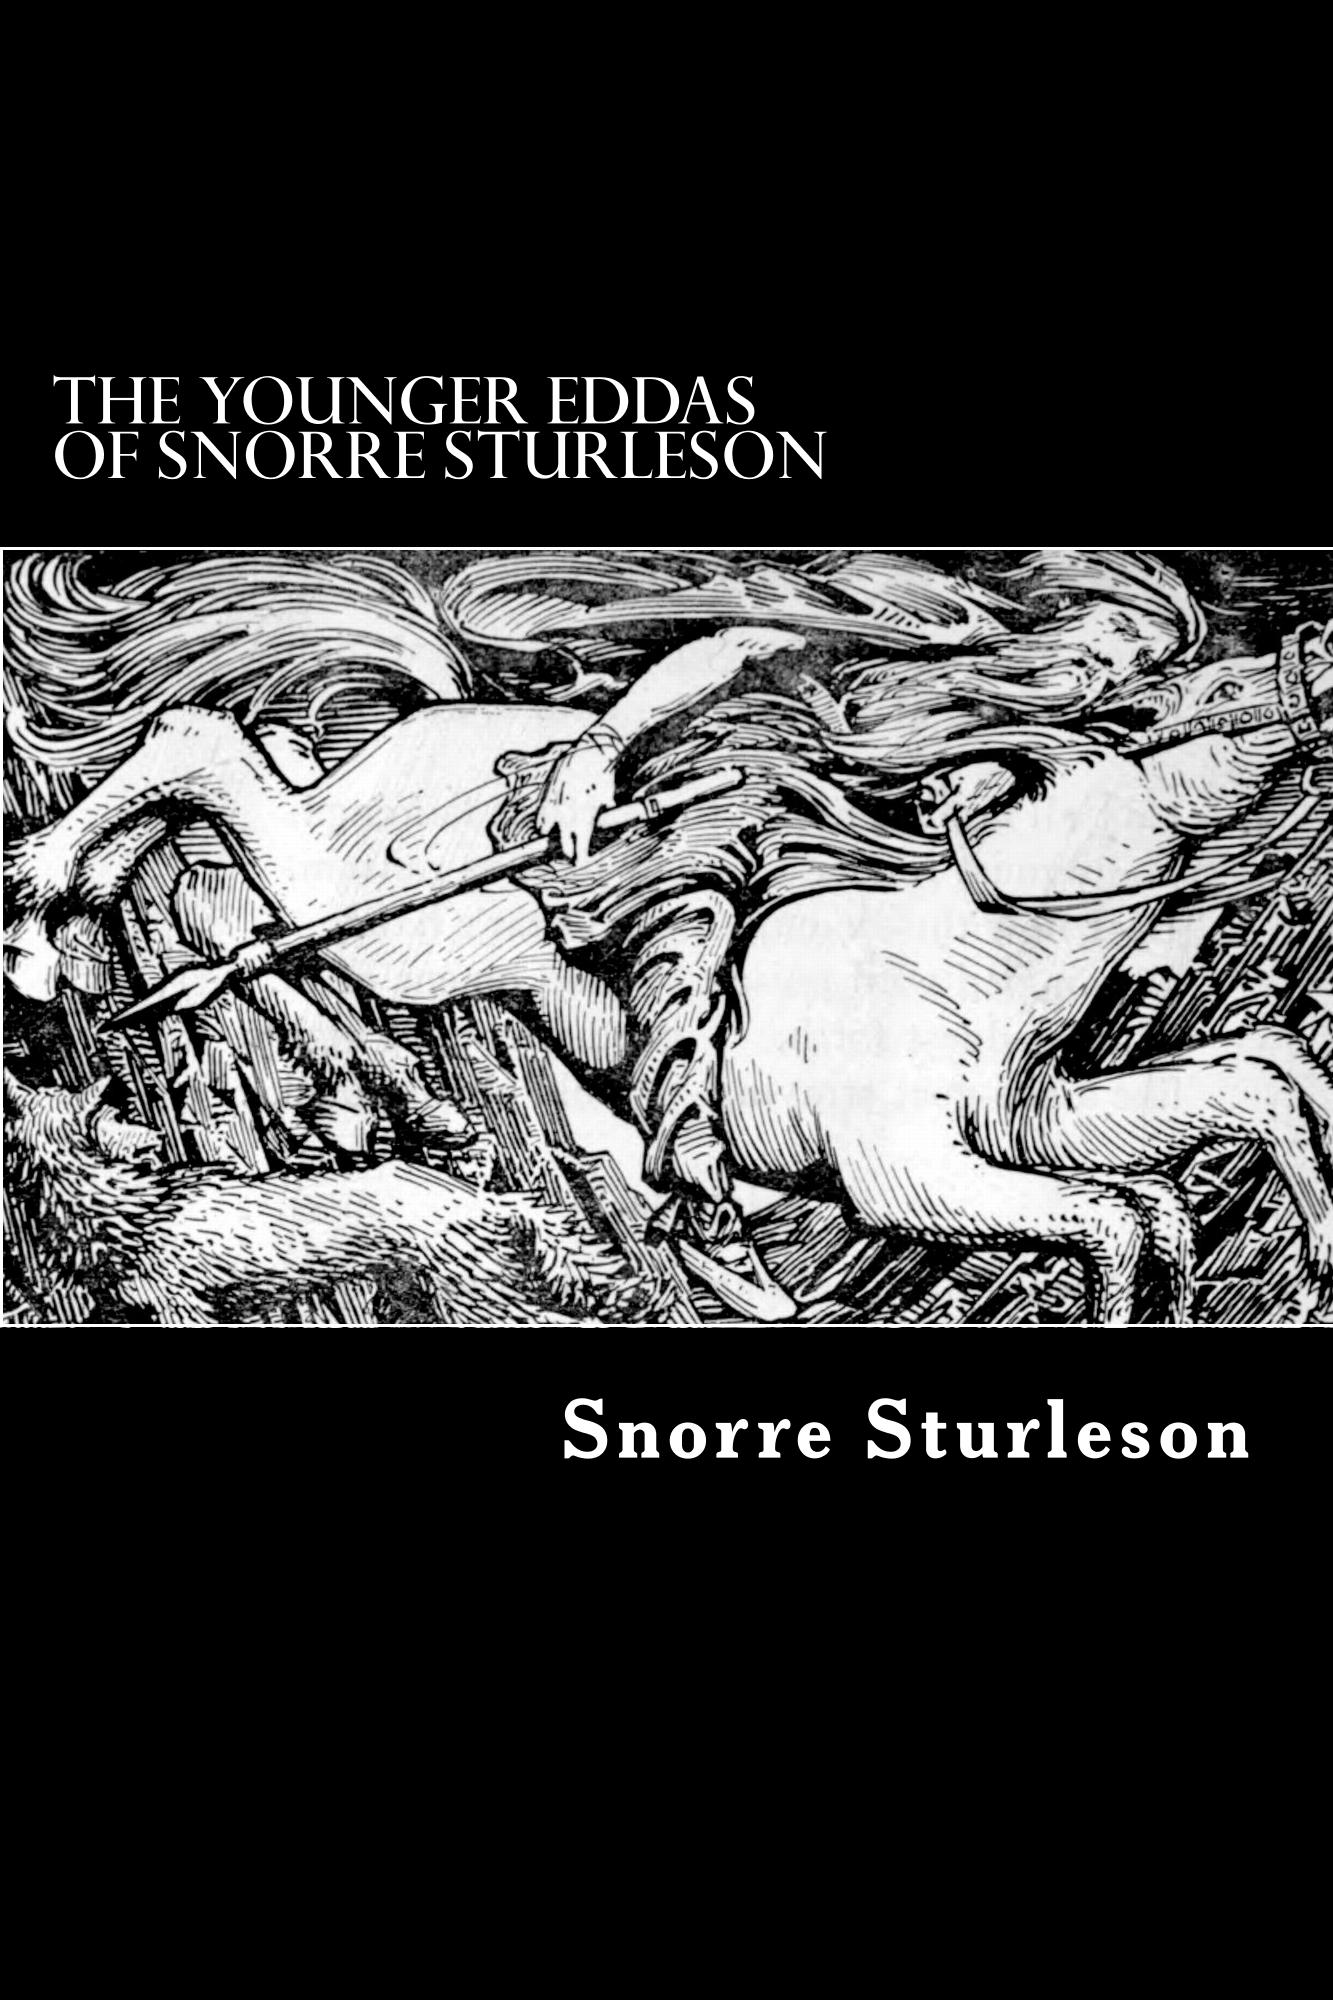 The Younger Eddas of Snorre Sturleson